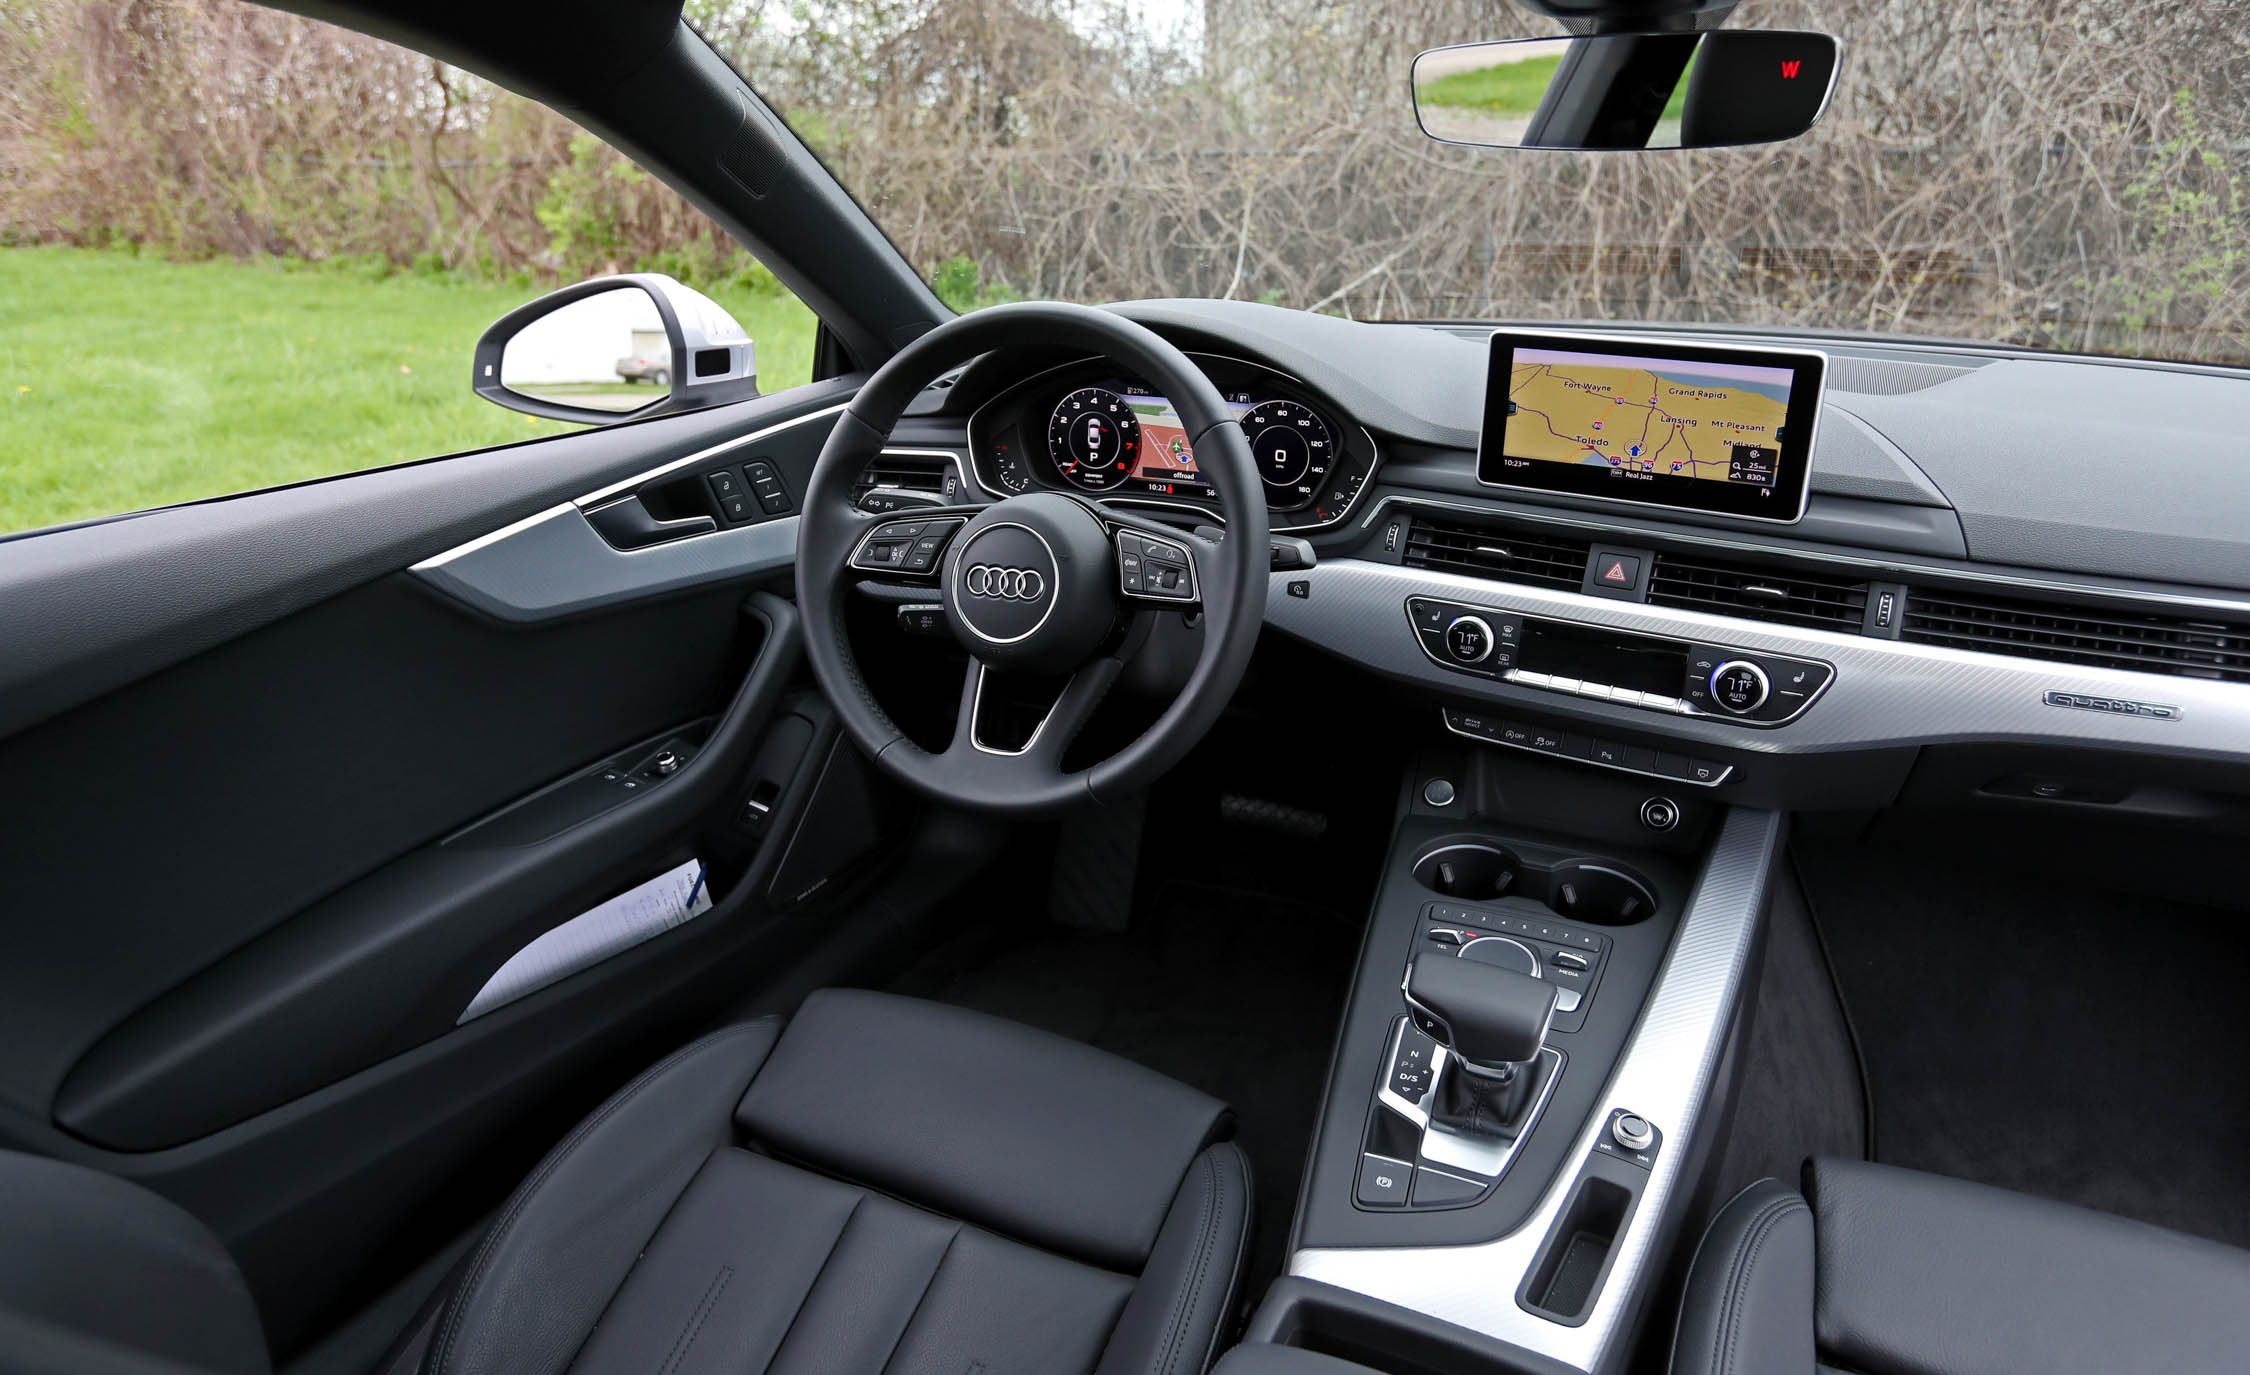 2018 Audi A5 Coupe Interior Driver Steering And Dash (Photo 17 of 50)